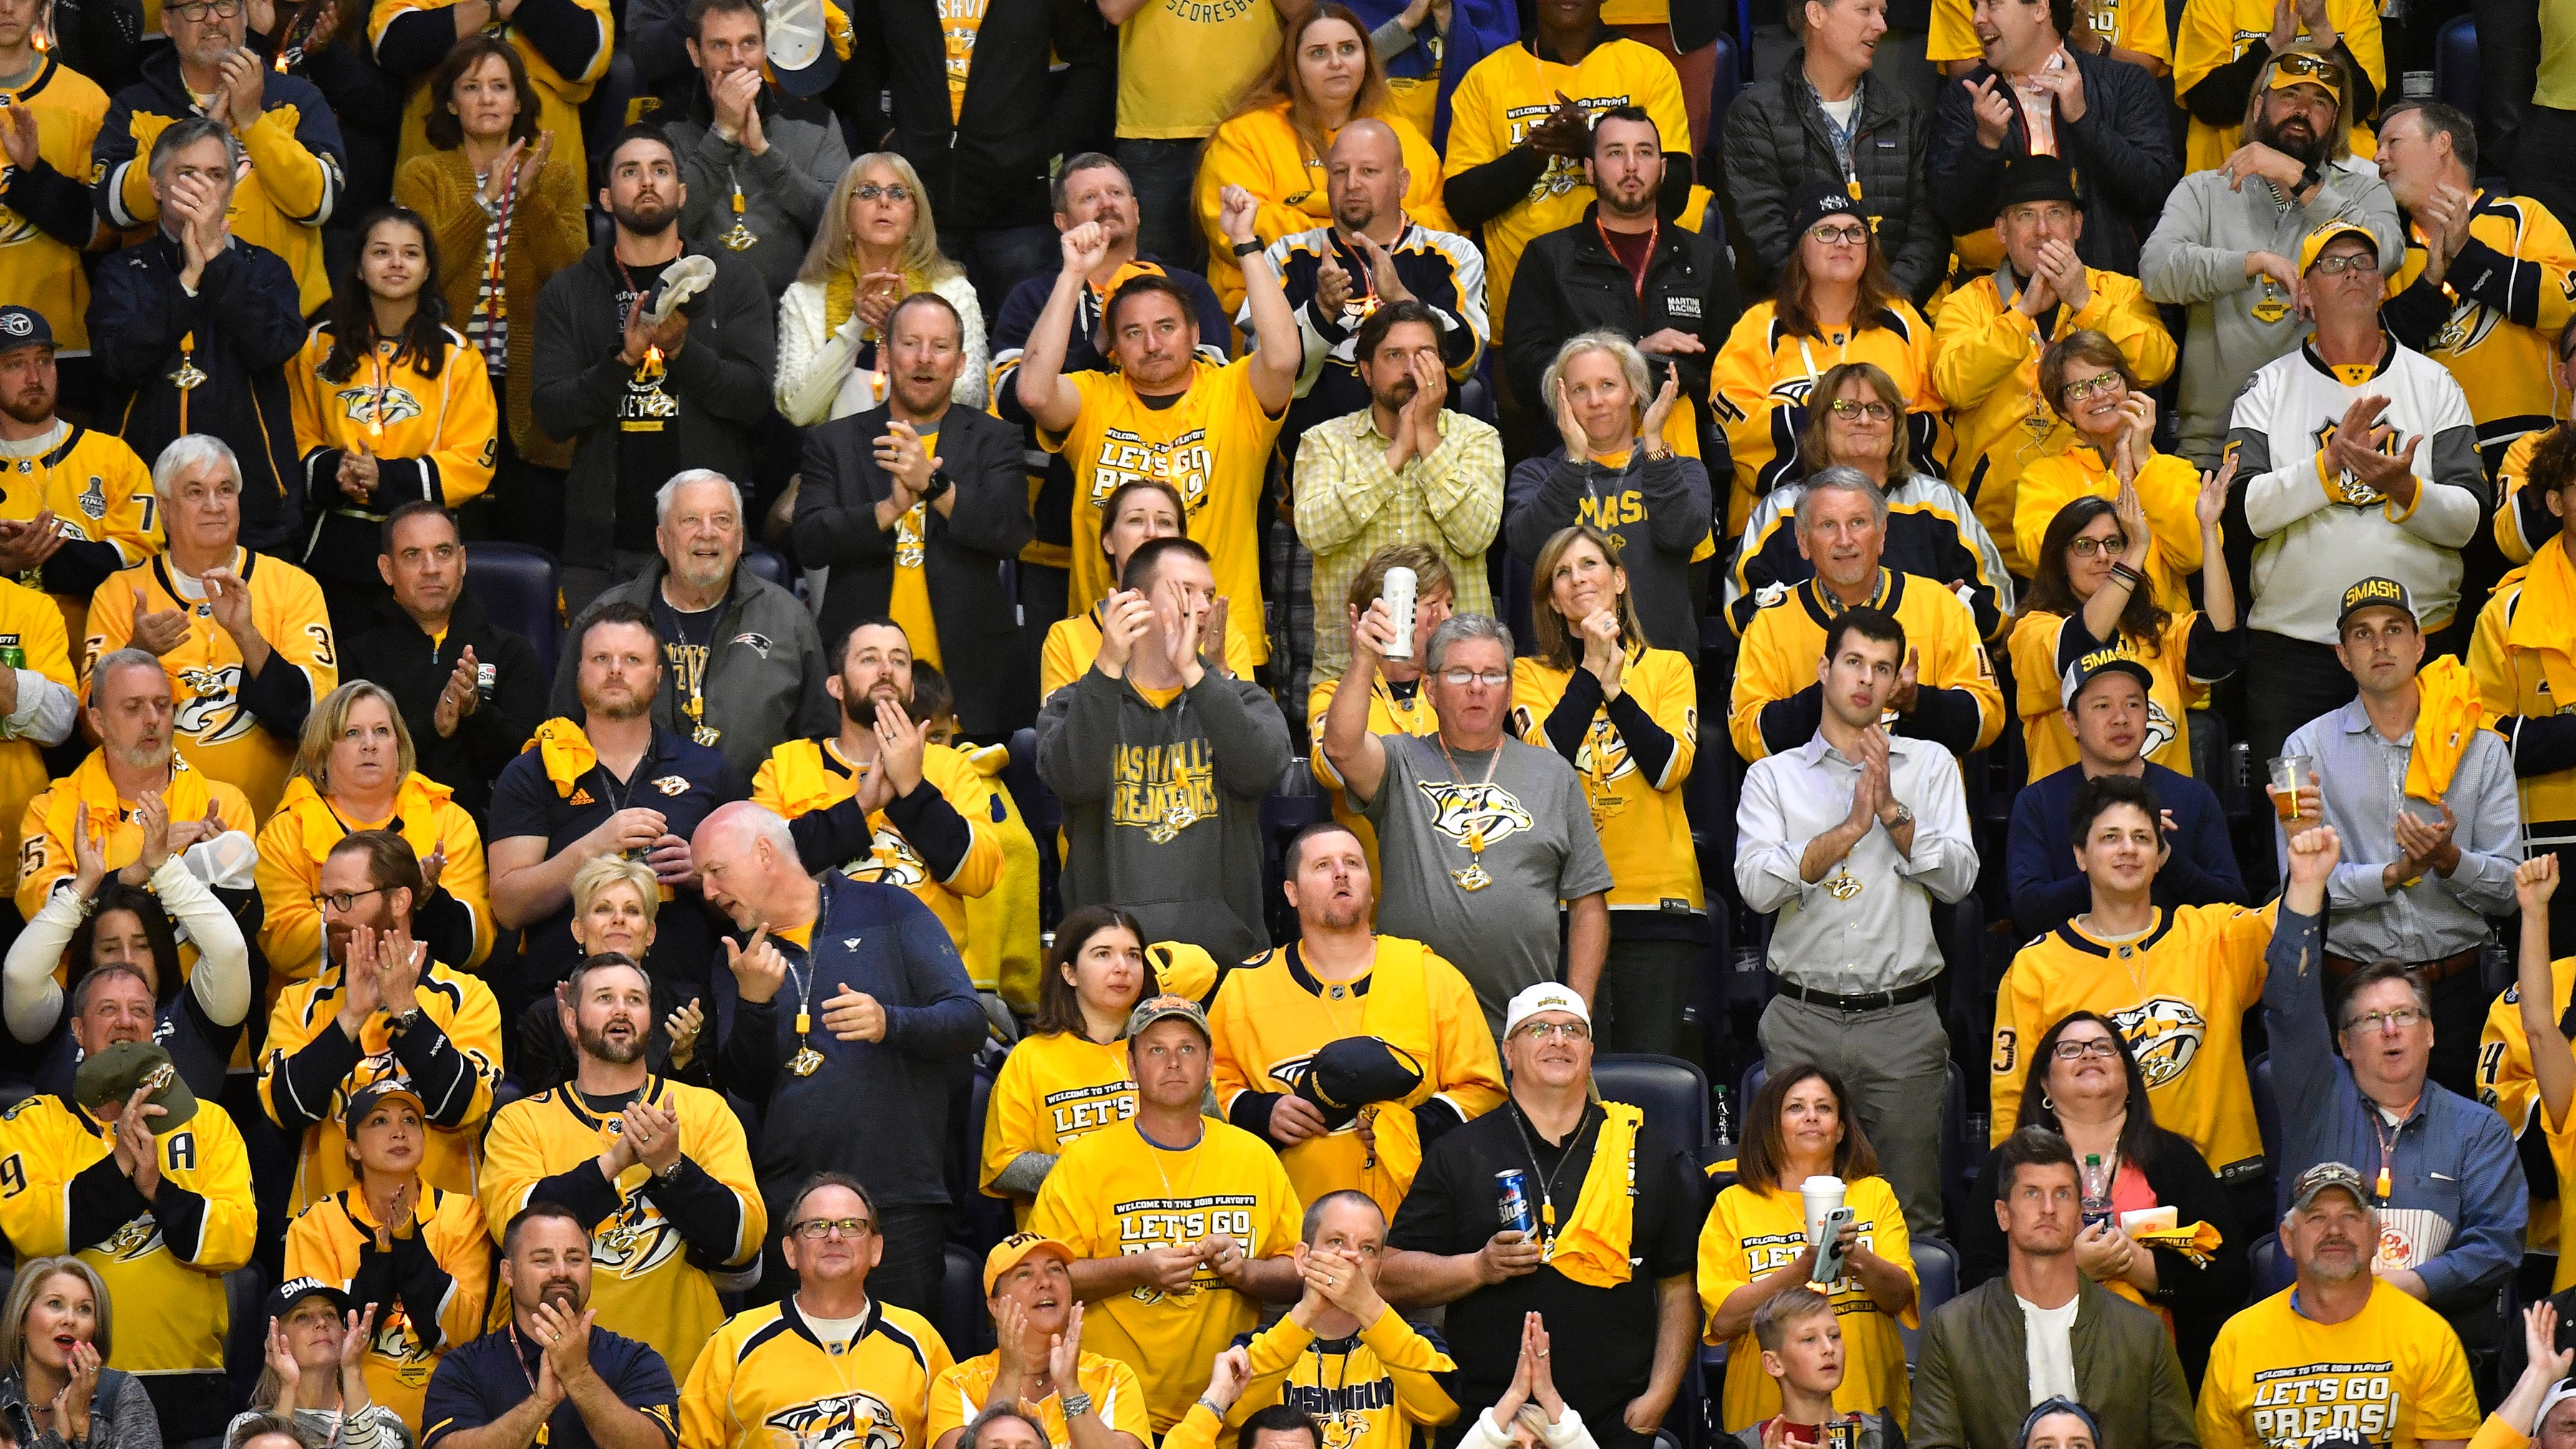 Predators fans cheer during the second period of the divisional semifinal game at Bridgestone Arena in Nashville, Tenn., Wednesday, April 10, 2019.